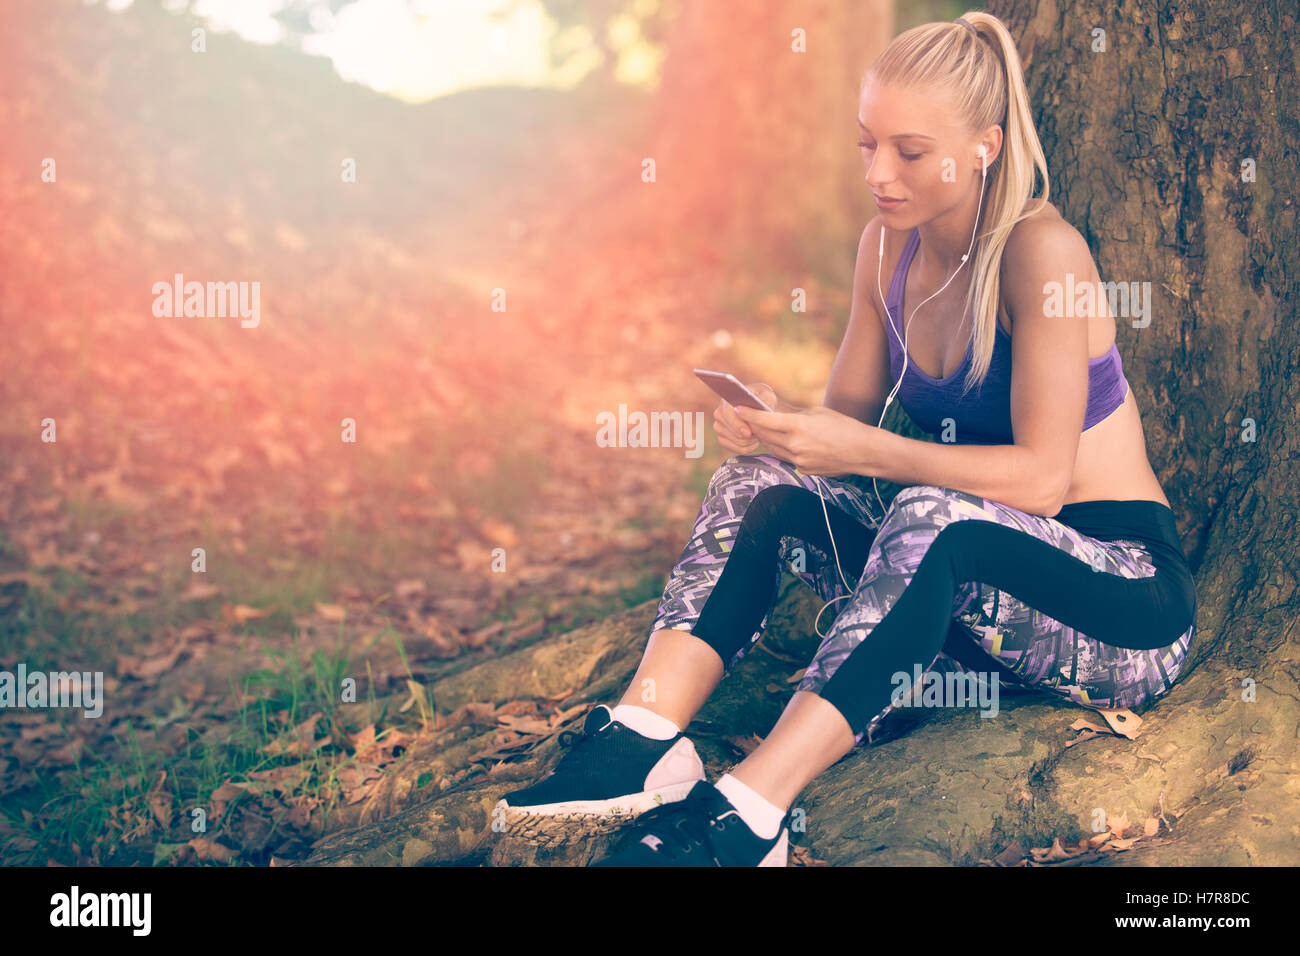 Breathing deep during jogging in the forest - Stock Image